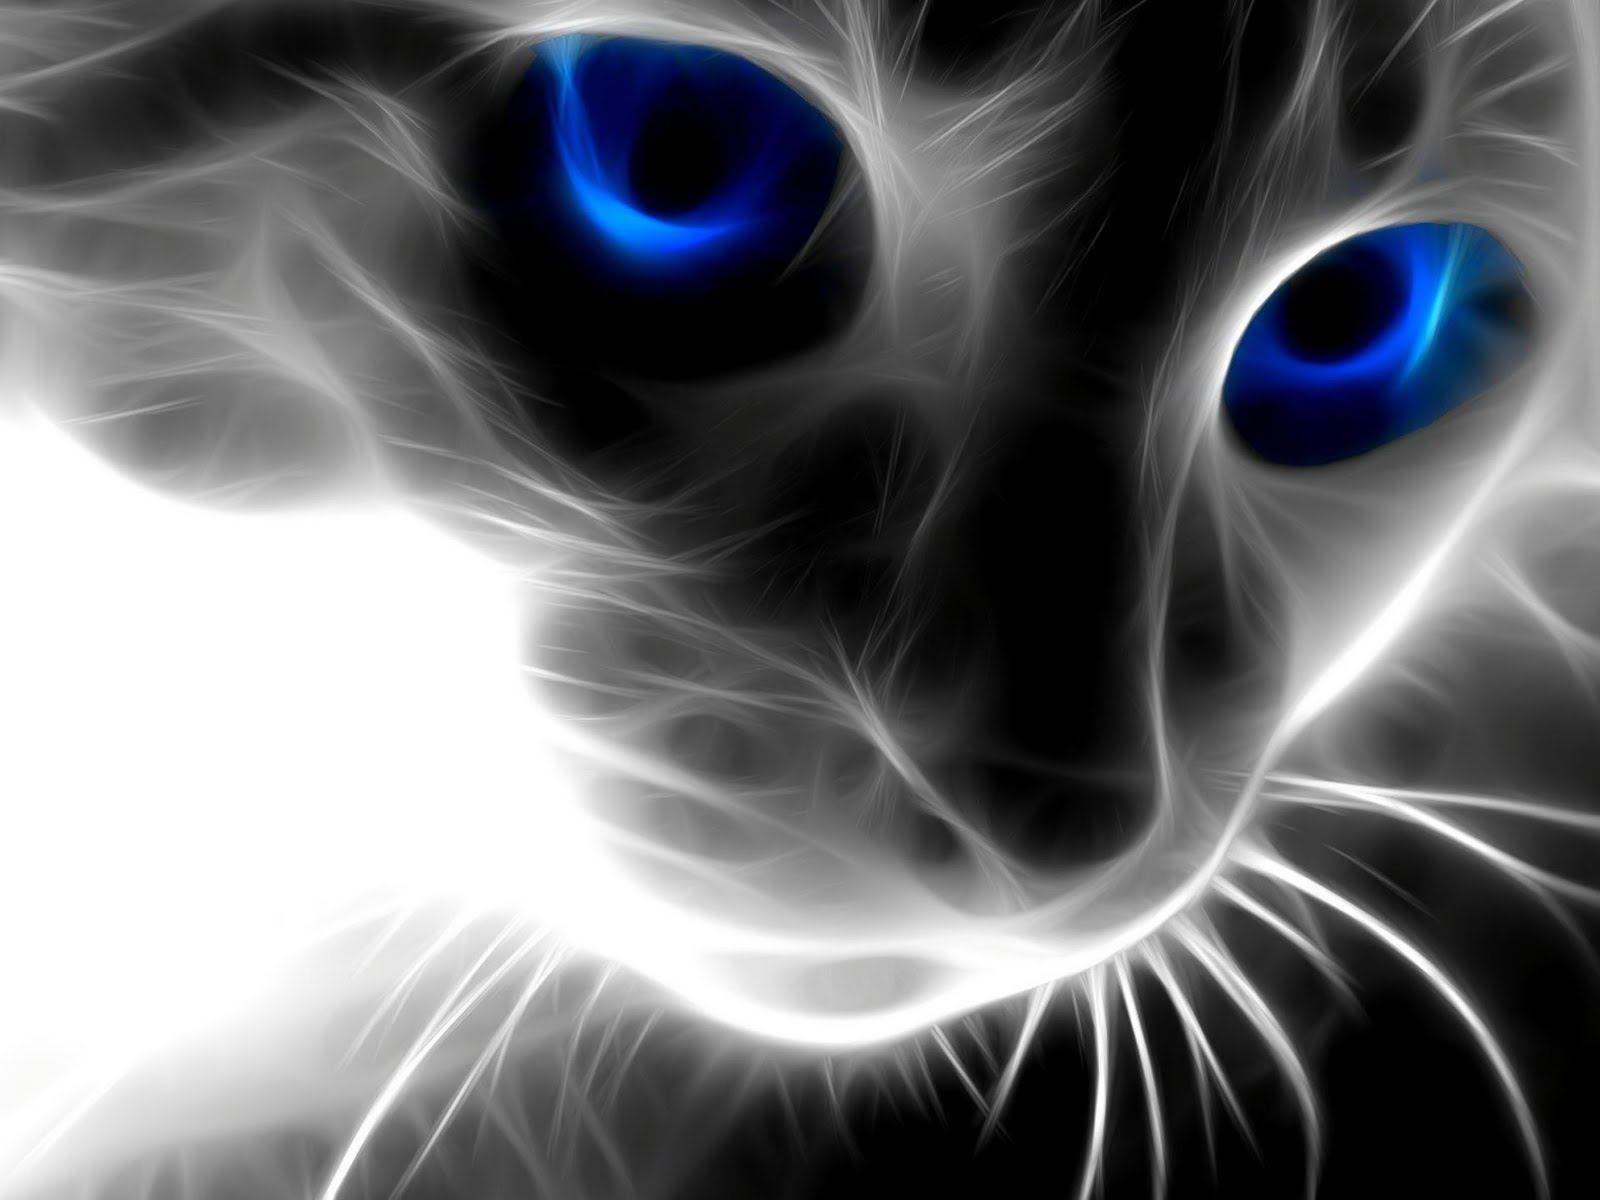 Magic_Cat_wallpaper_windows_7.jpg